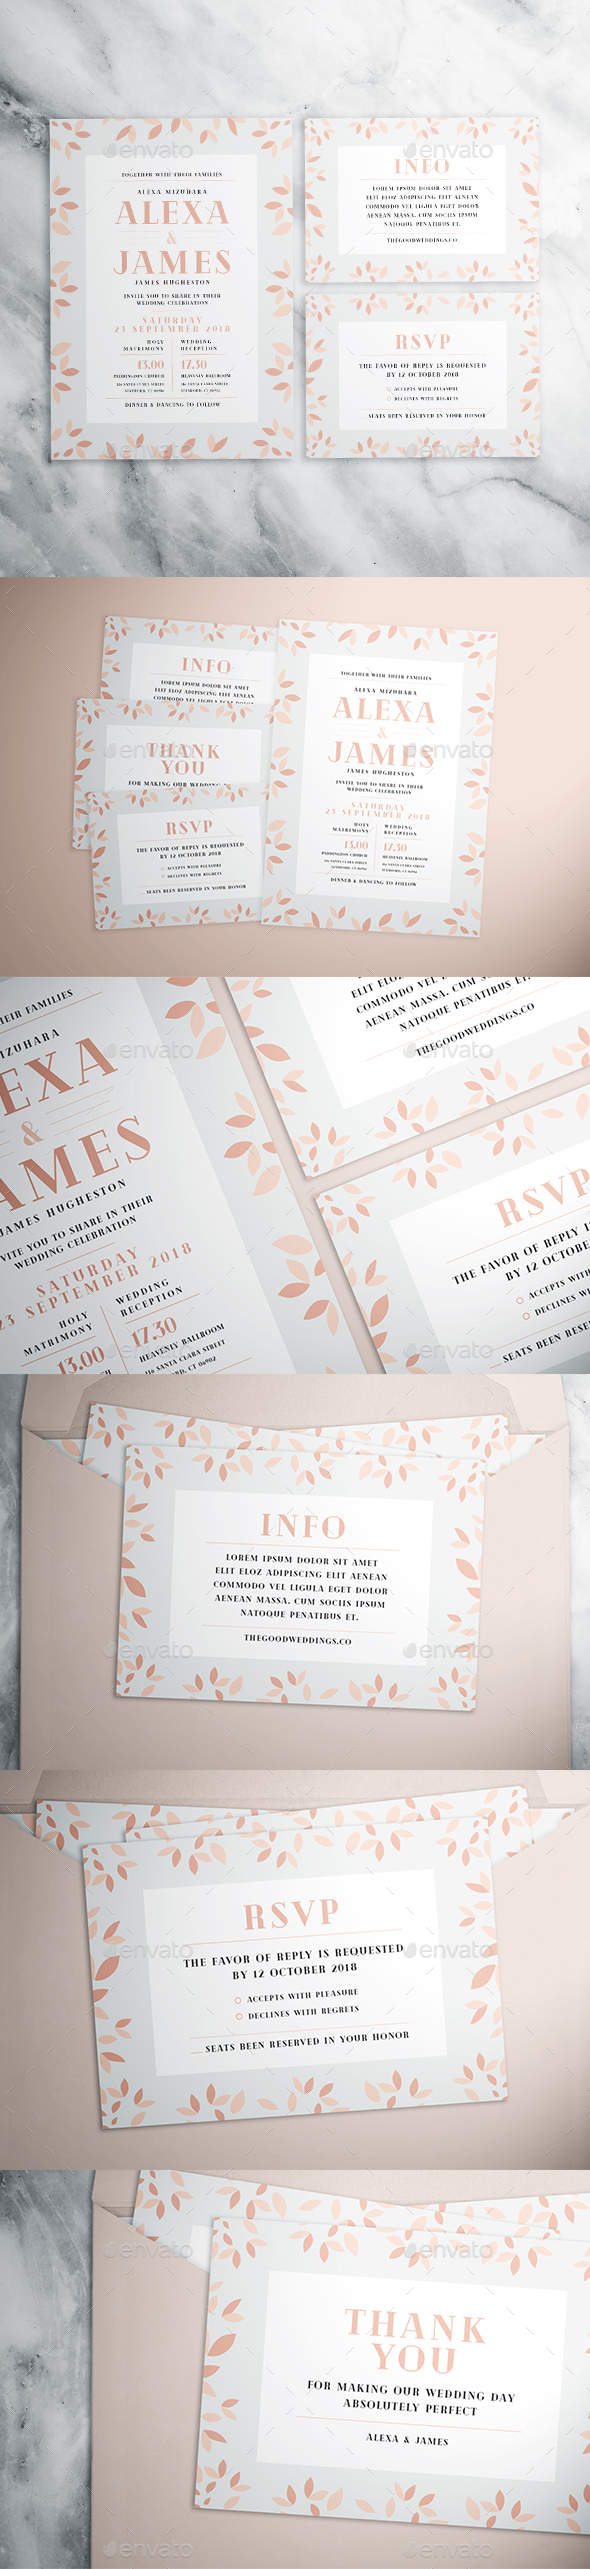 Simple Flower Wedding Suite - Weddings Cards & Invites